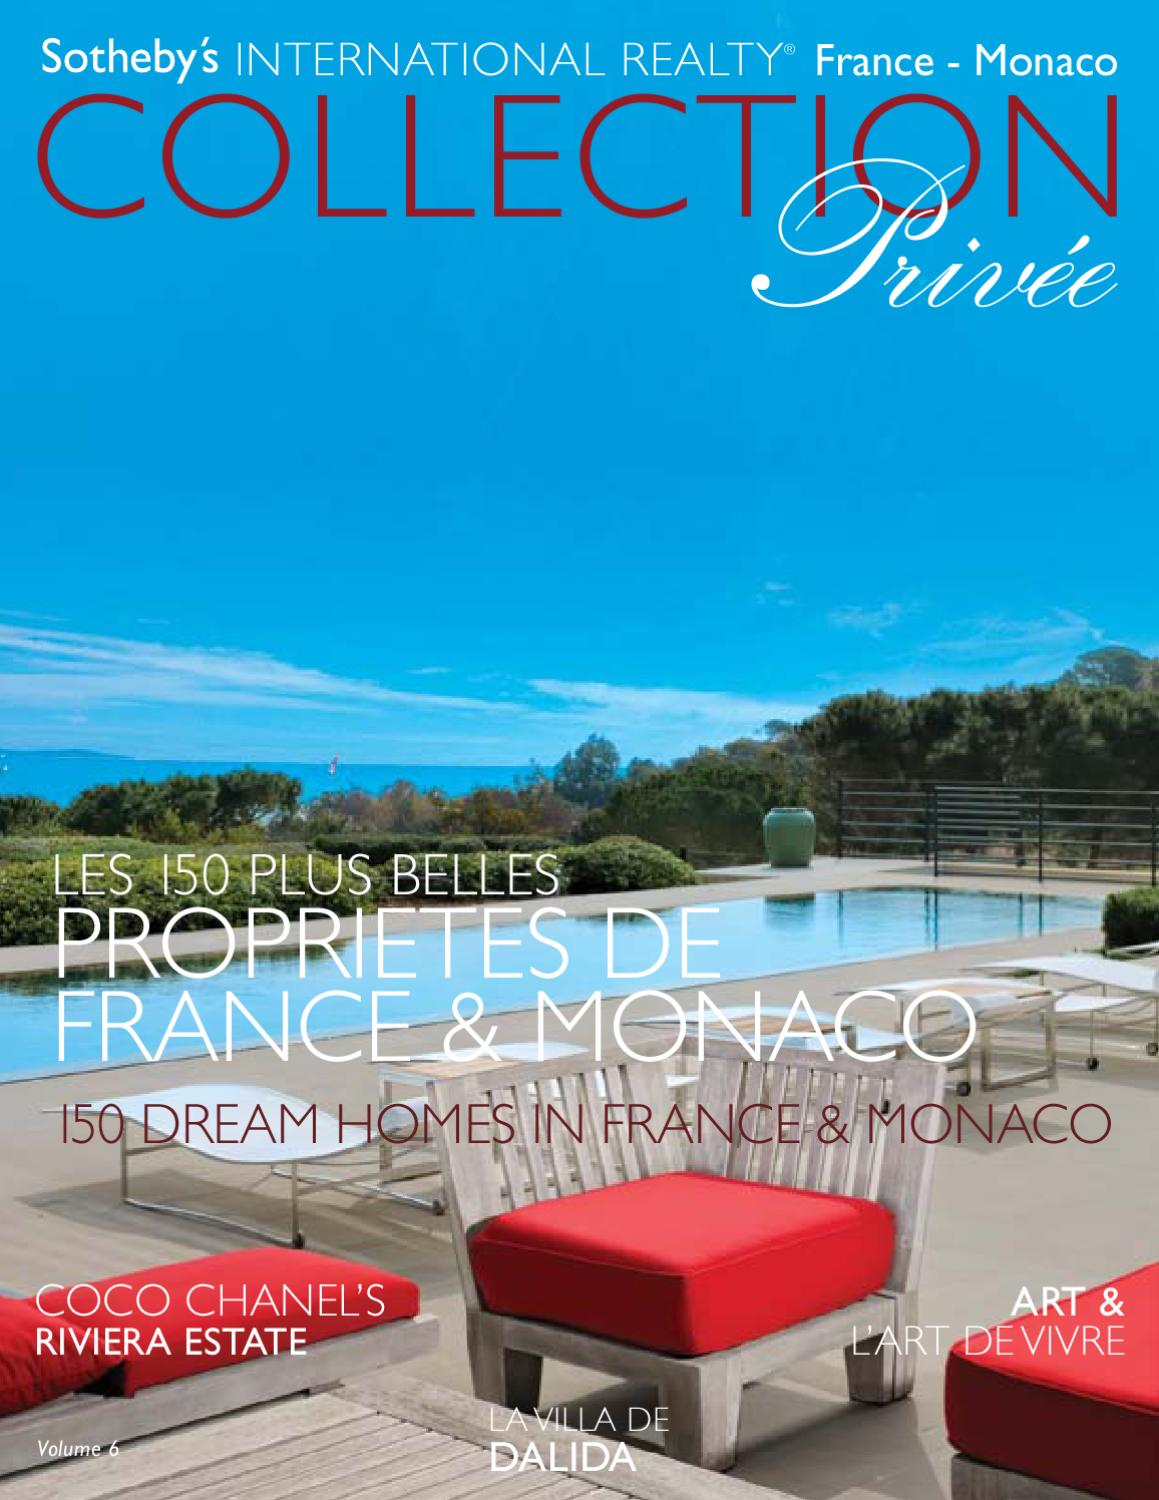 collection privee vol 6 by sotheby 39 s international realty france issuu. Black Bedroom Furniture Sets. Home Design Ideas